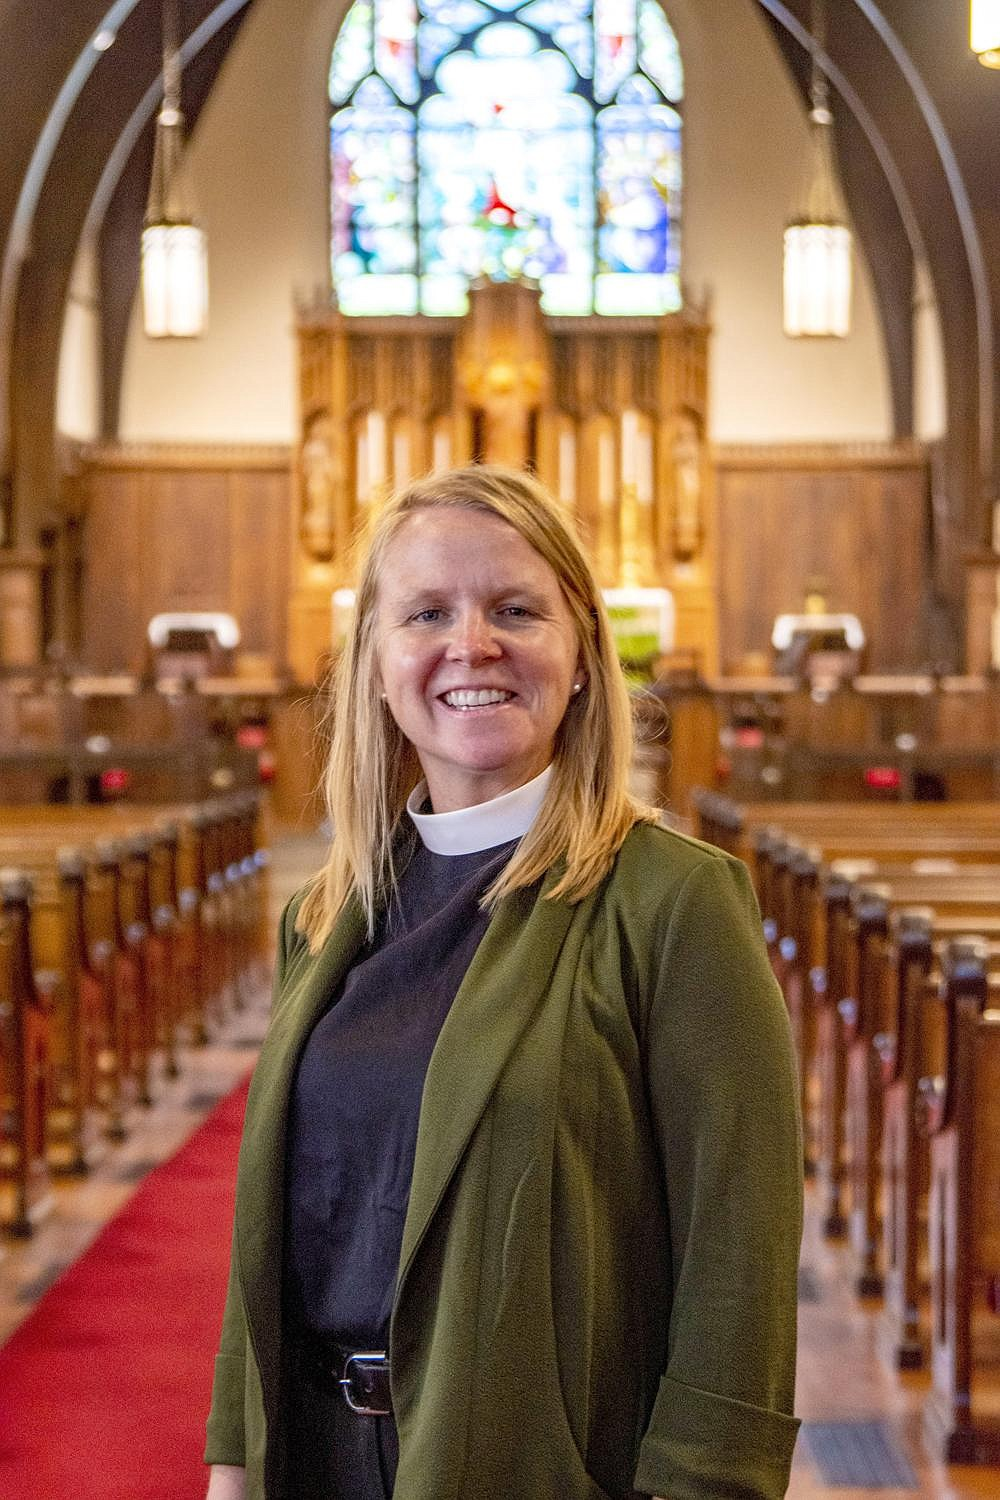 """""""I'm really excited about being a part of the life of the Cathedral and with the life of the Diocese of Arkansas. I think that there's so much goodness and richness that's going to come from being in ministry with the people there."""" — Amy Meaux (Arkansas Democrat-Gazette/Cary Jenkins)"""